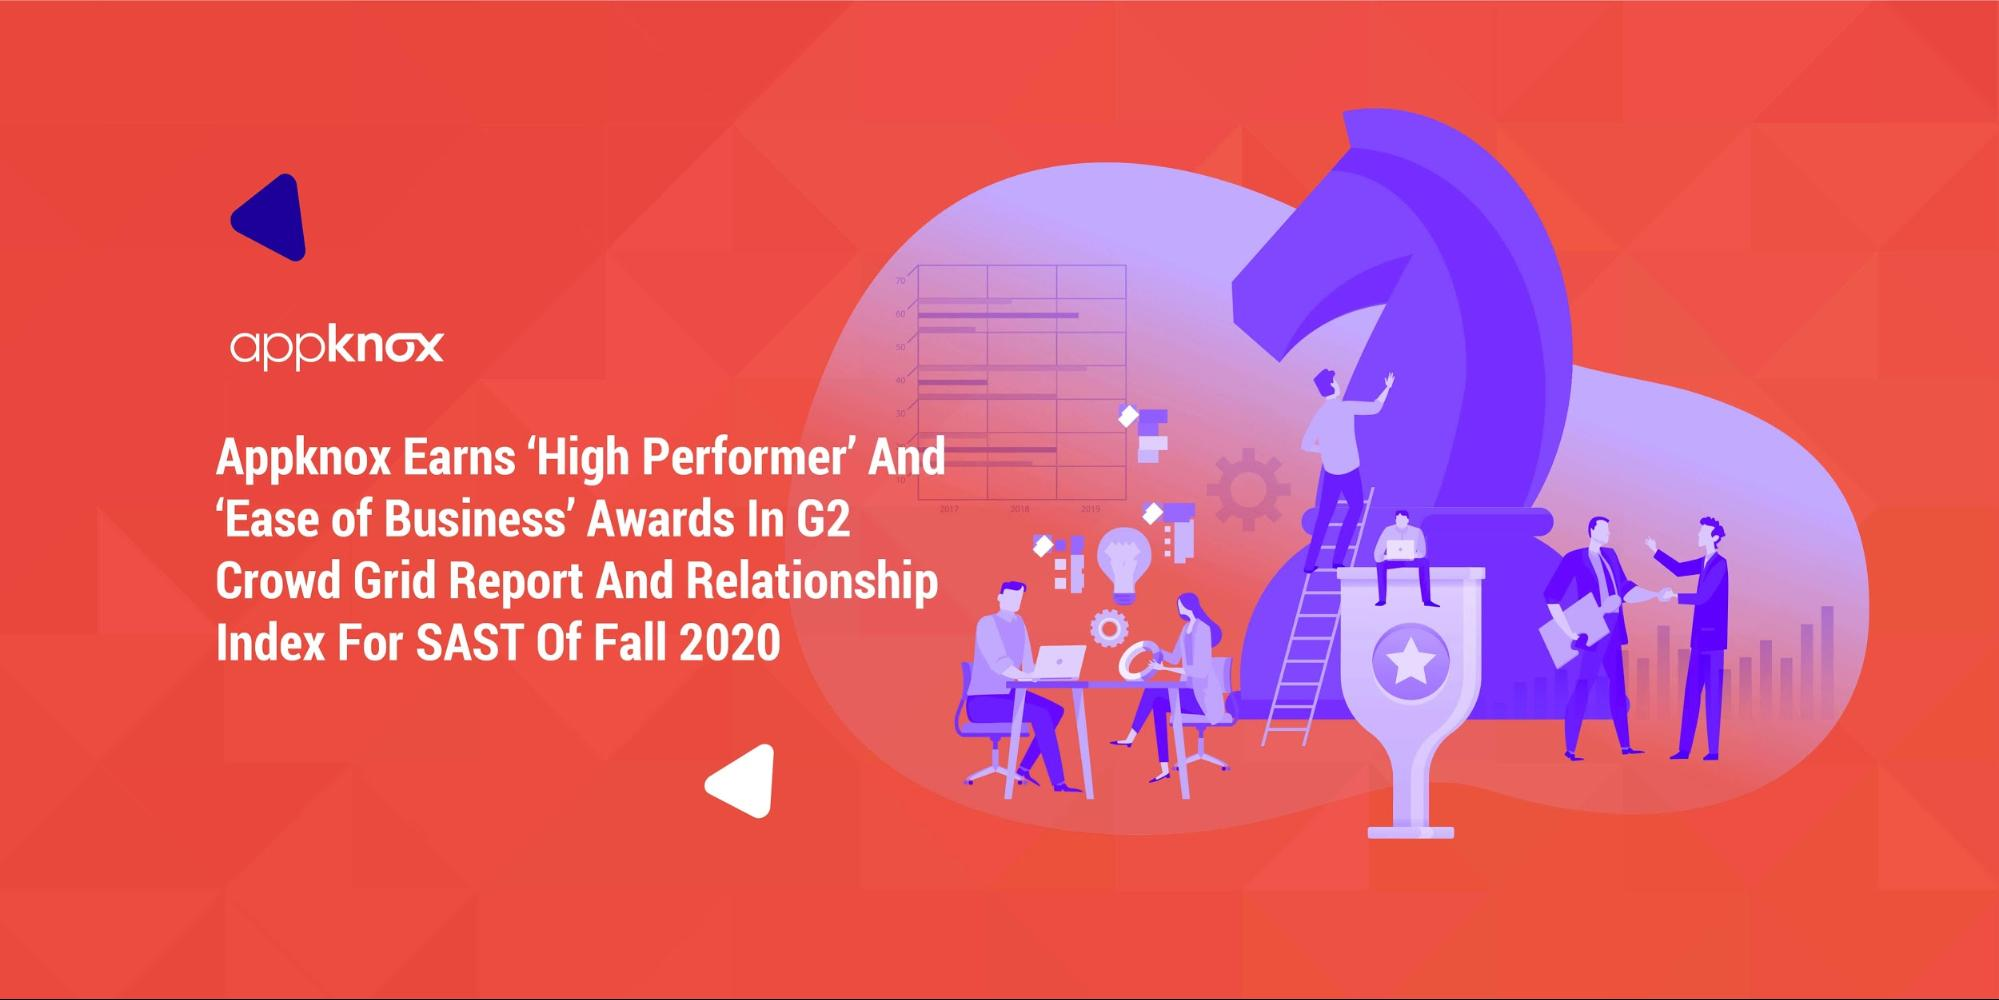 Appknox Earns 'High Performer' And 'Ease of Business' Awards In G2 Crowd Grid Report And Relationship Index For SAST Of Fall 2020